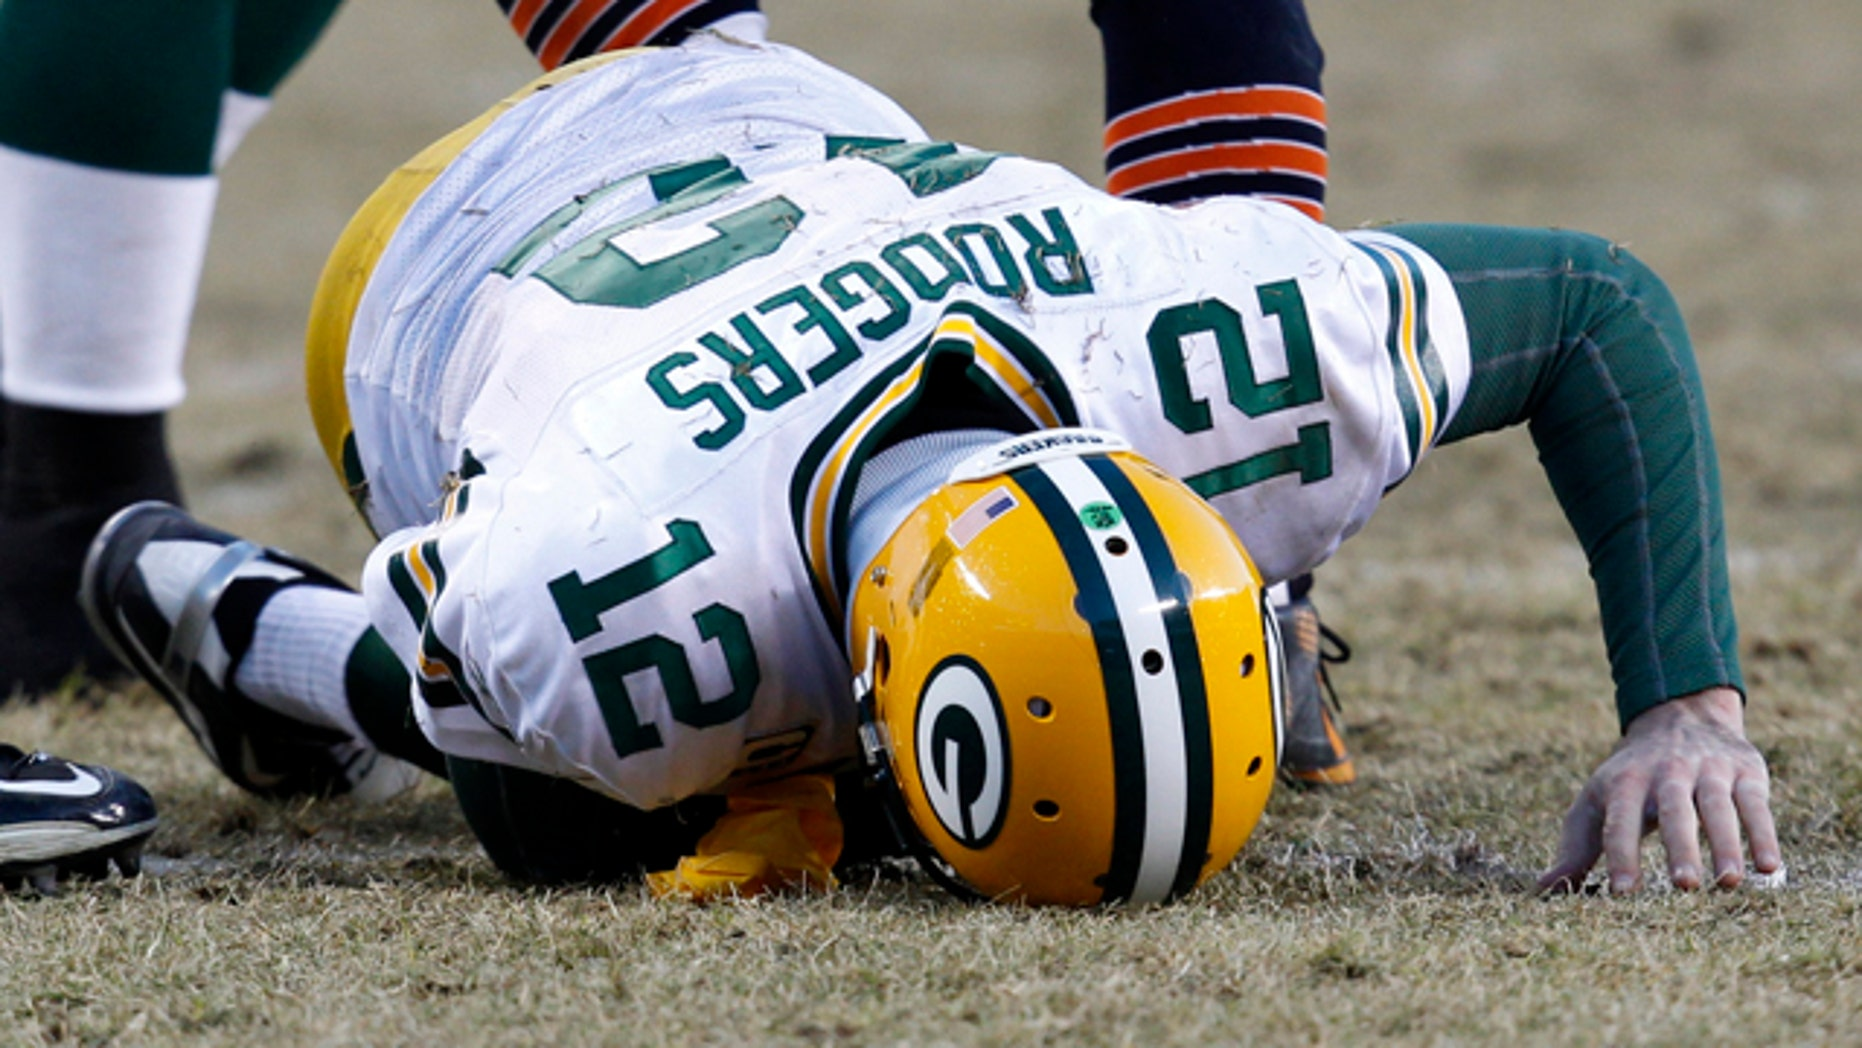 Green Bay Packers quarterback Aaron Rodgers reacts after being hit by Chicago Bears defensive end Julius Peppers during the fourth quarter of the NFC Championship football game in Chicago, January 23, 2011.